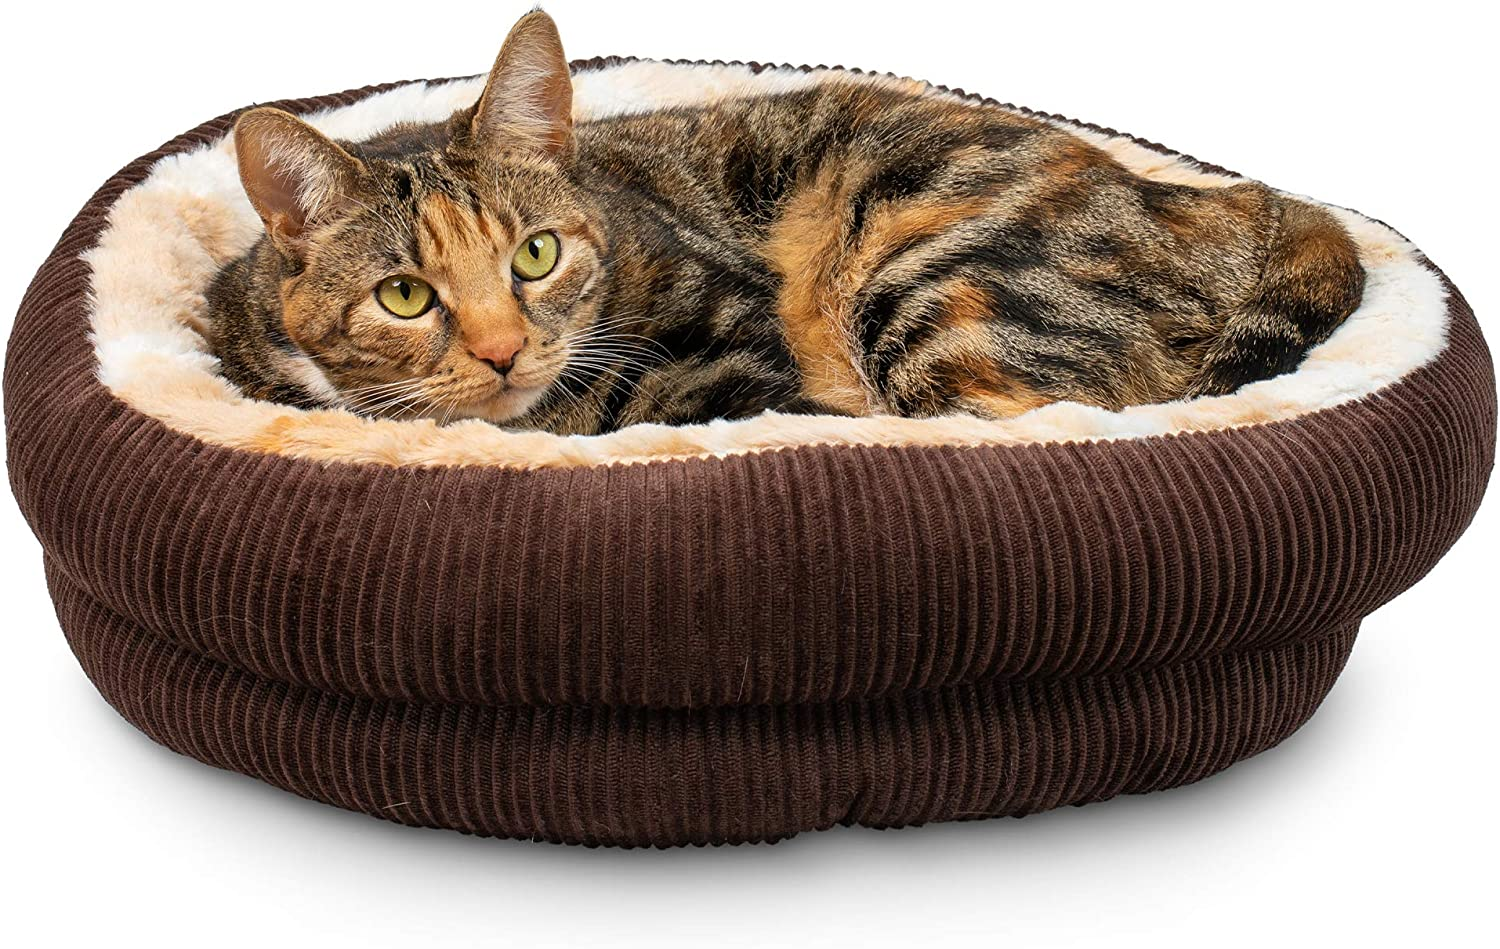 13 Must-Have Items For Cool Cats